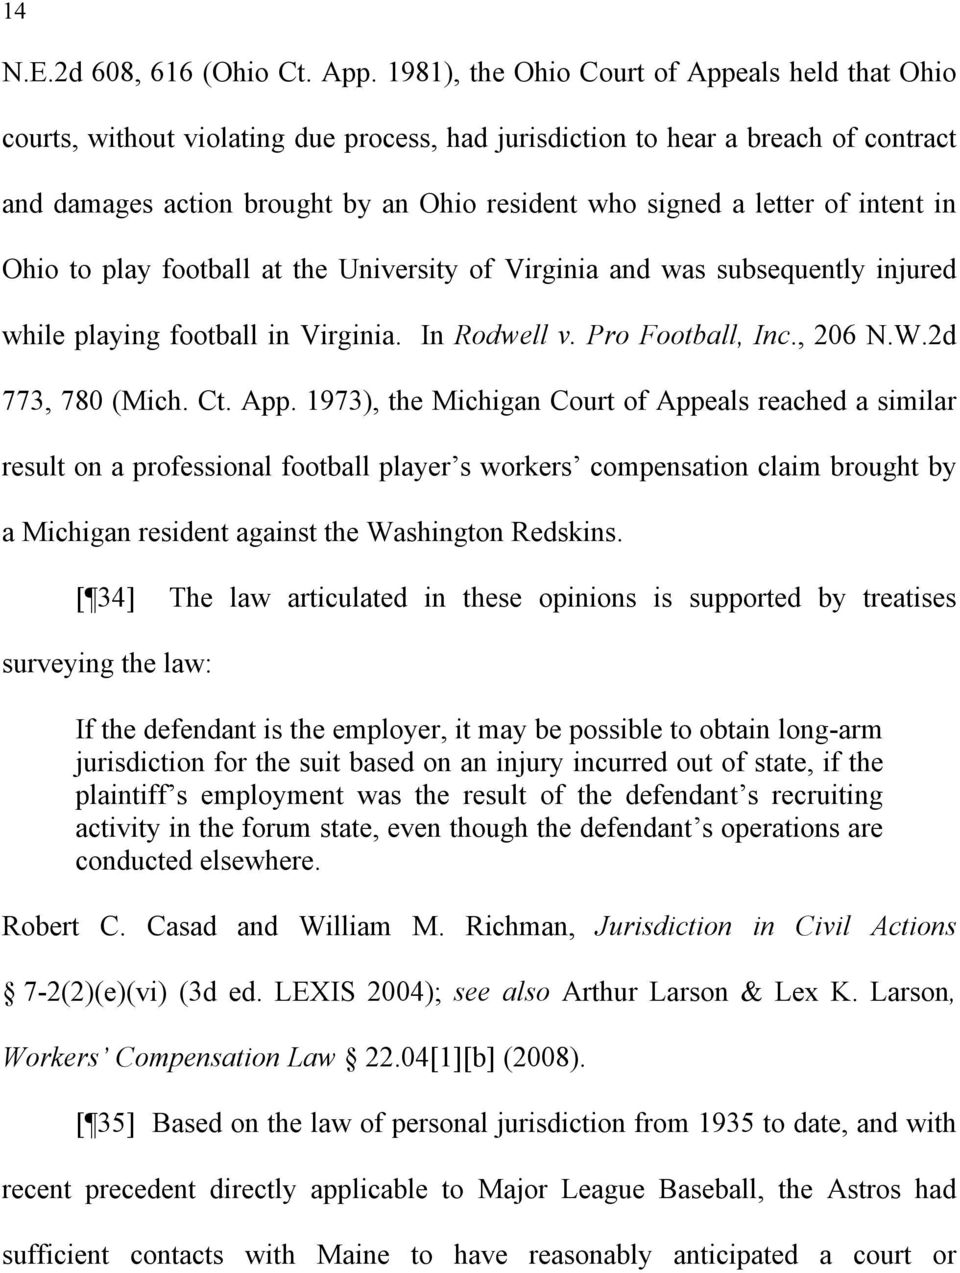 of intent in Ohio to play football at the University of Virginia and was subsequently injured while playing football in Virginia. In Rodwell v. Pro Football, Inc., 206 N.W.2d 773, 780 (Mich. Ct. App.